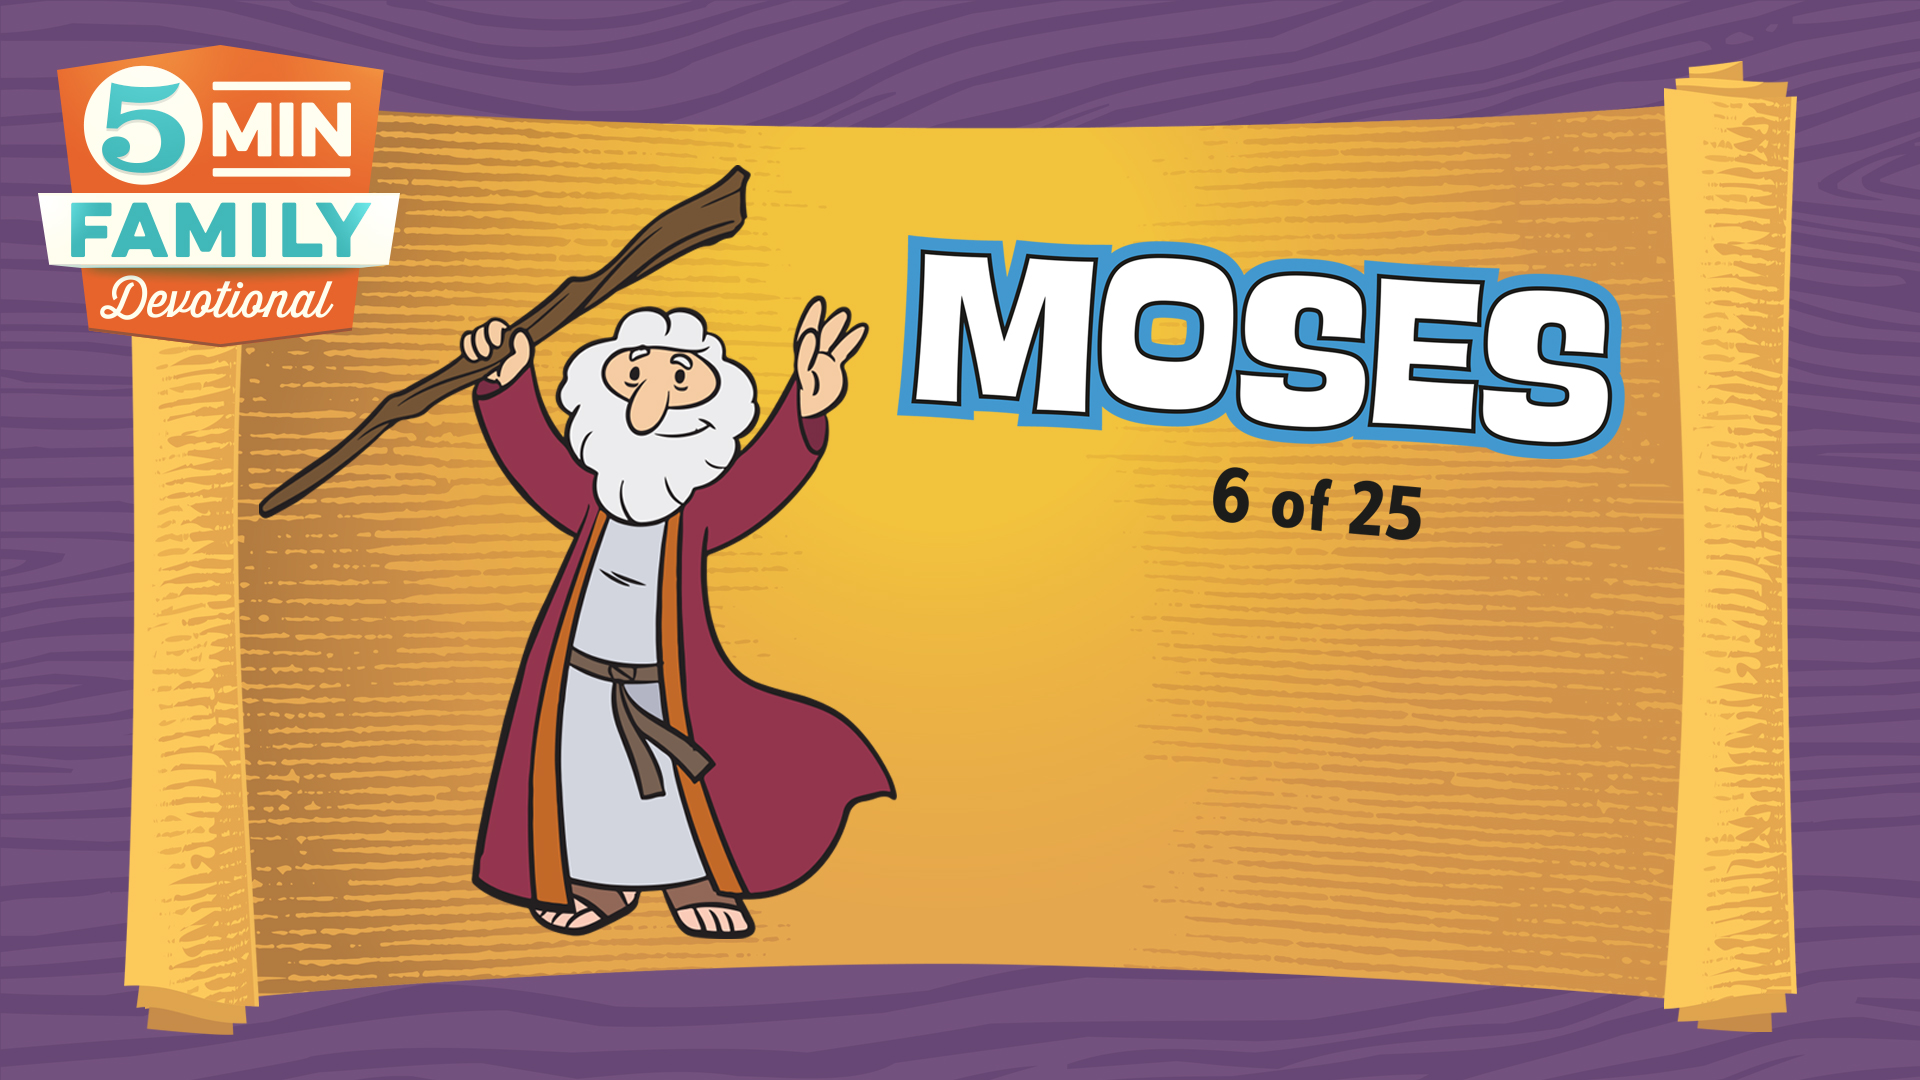 Moses god helped moses